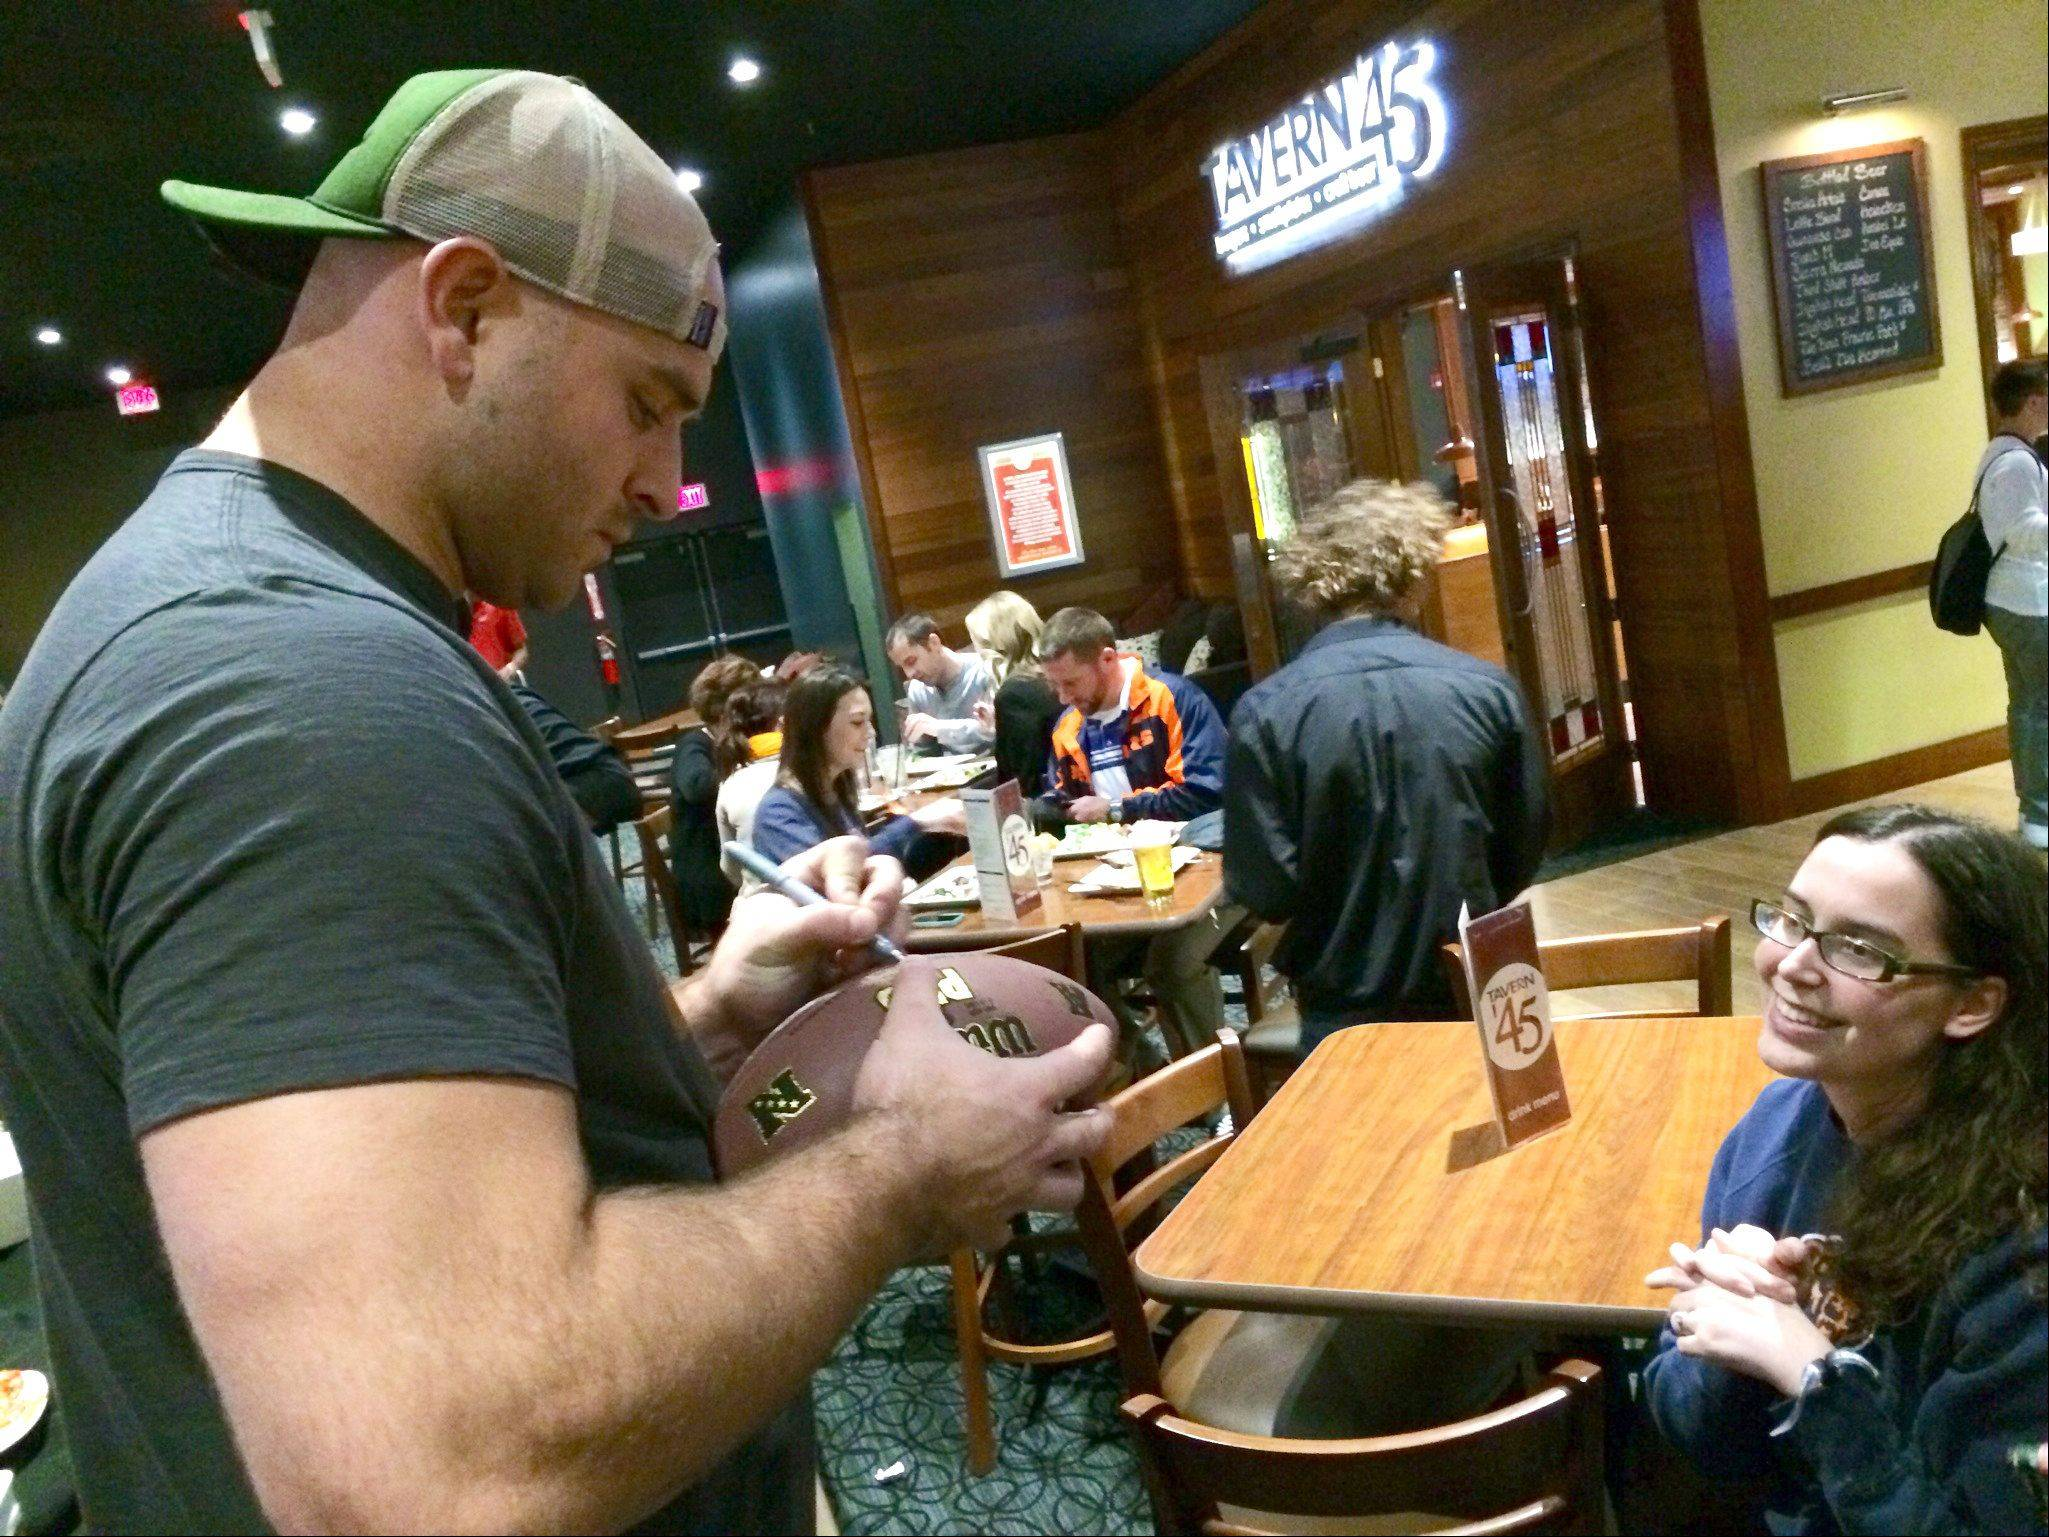 Chicago Bear Kyle Long signs a football for a fan at a charity bowling event in Buffalo Grove Tuesday night.